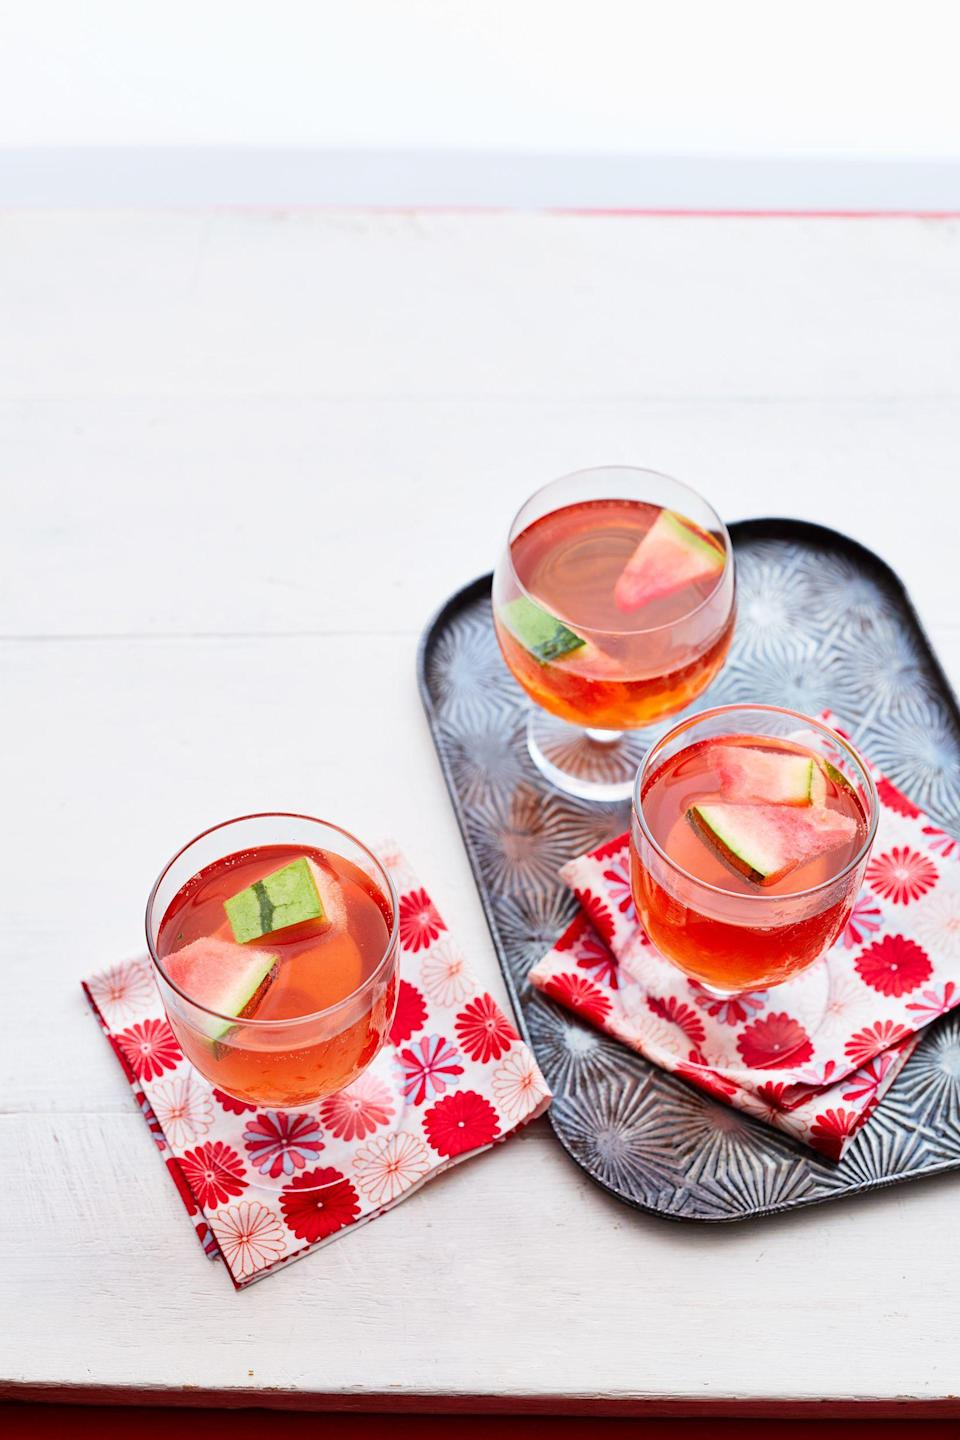 """<p>A summer get-together isn't complete without a batch of ice-cold beverages and cocktails. Sure, a pitcher of lemonade or iced tea will get the job done, but why not go all out and get creative in the kitchen? For instance, you could try one of these delicious watermelon drinks instead to cool off on a hot day. They'll also pair perfectly with your favorite <a href=""""https://thepioneerwoman.com/food-cooking/meals-menus/g32188535/best-grilling-recipes/"""" rel=""""nofollow noopener"""" target=""""_blank"""" data-ylk=""""slk:grilling recipes"""" class=""""link rapid-noclick-resp"""">grilling recipes</a> at your next cookout or as fun <a href=""""https://www.thepioneerwoman.com/food-cooking/meals-menus/g36432840/fourth-of-july-drinks/"""" rel=""""nofollow noopener"""" target=""""_blank"""" data-ylk=""""slk:4th of July drinks"""" class=""""link rapid-noclick-resp"""">4th of July drinks</a>!</p><p>While there are lots of things to love about these summer drink recipes, the best part is how <em>easy</em> they are to make. Most of these ideas start with watermelon juice which could not be simpler to whip up—just toss chunks of the fruit in the blender! It's also the perfect way to use up leftover watermelon. If you're after watermelon <a href=""""https://thepioneerwoman.com/food-cooking/meals-menus/g32304317/cocktail-recipes/"""" rel=""""nofollow noopener"""" target=""""_blank"""" data-ylk=""""slk:cocktail recipes"""" class=""""link rapid-noclick-resp"""">cocktail recipes</a> or watermelon mixed drinks, there are so many to choose from. Try making a watermelon margarita or Ree Drummond's three-ingredient watermelon sangria. Or, if you want alcohol-free drinks for the kids to go along with your delicious <a href=""""https://www.thepioneerwoman.com/food-cooking/meals-menus/g32336081/summer-recipes/"""" rel=""""nofollow noopener"""" target=""""_blank"""" data-ylk=""""slk:summer recipes"""" class=""""link rapid-noclick-resp"""">summer recipes</a>, check out the watermelon cantaloupe lemonade or watermelon smoothie. Your next barbecue is going to be a hit thanks to these delicious fruity wat"""